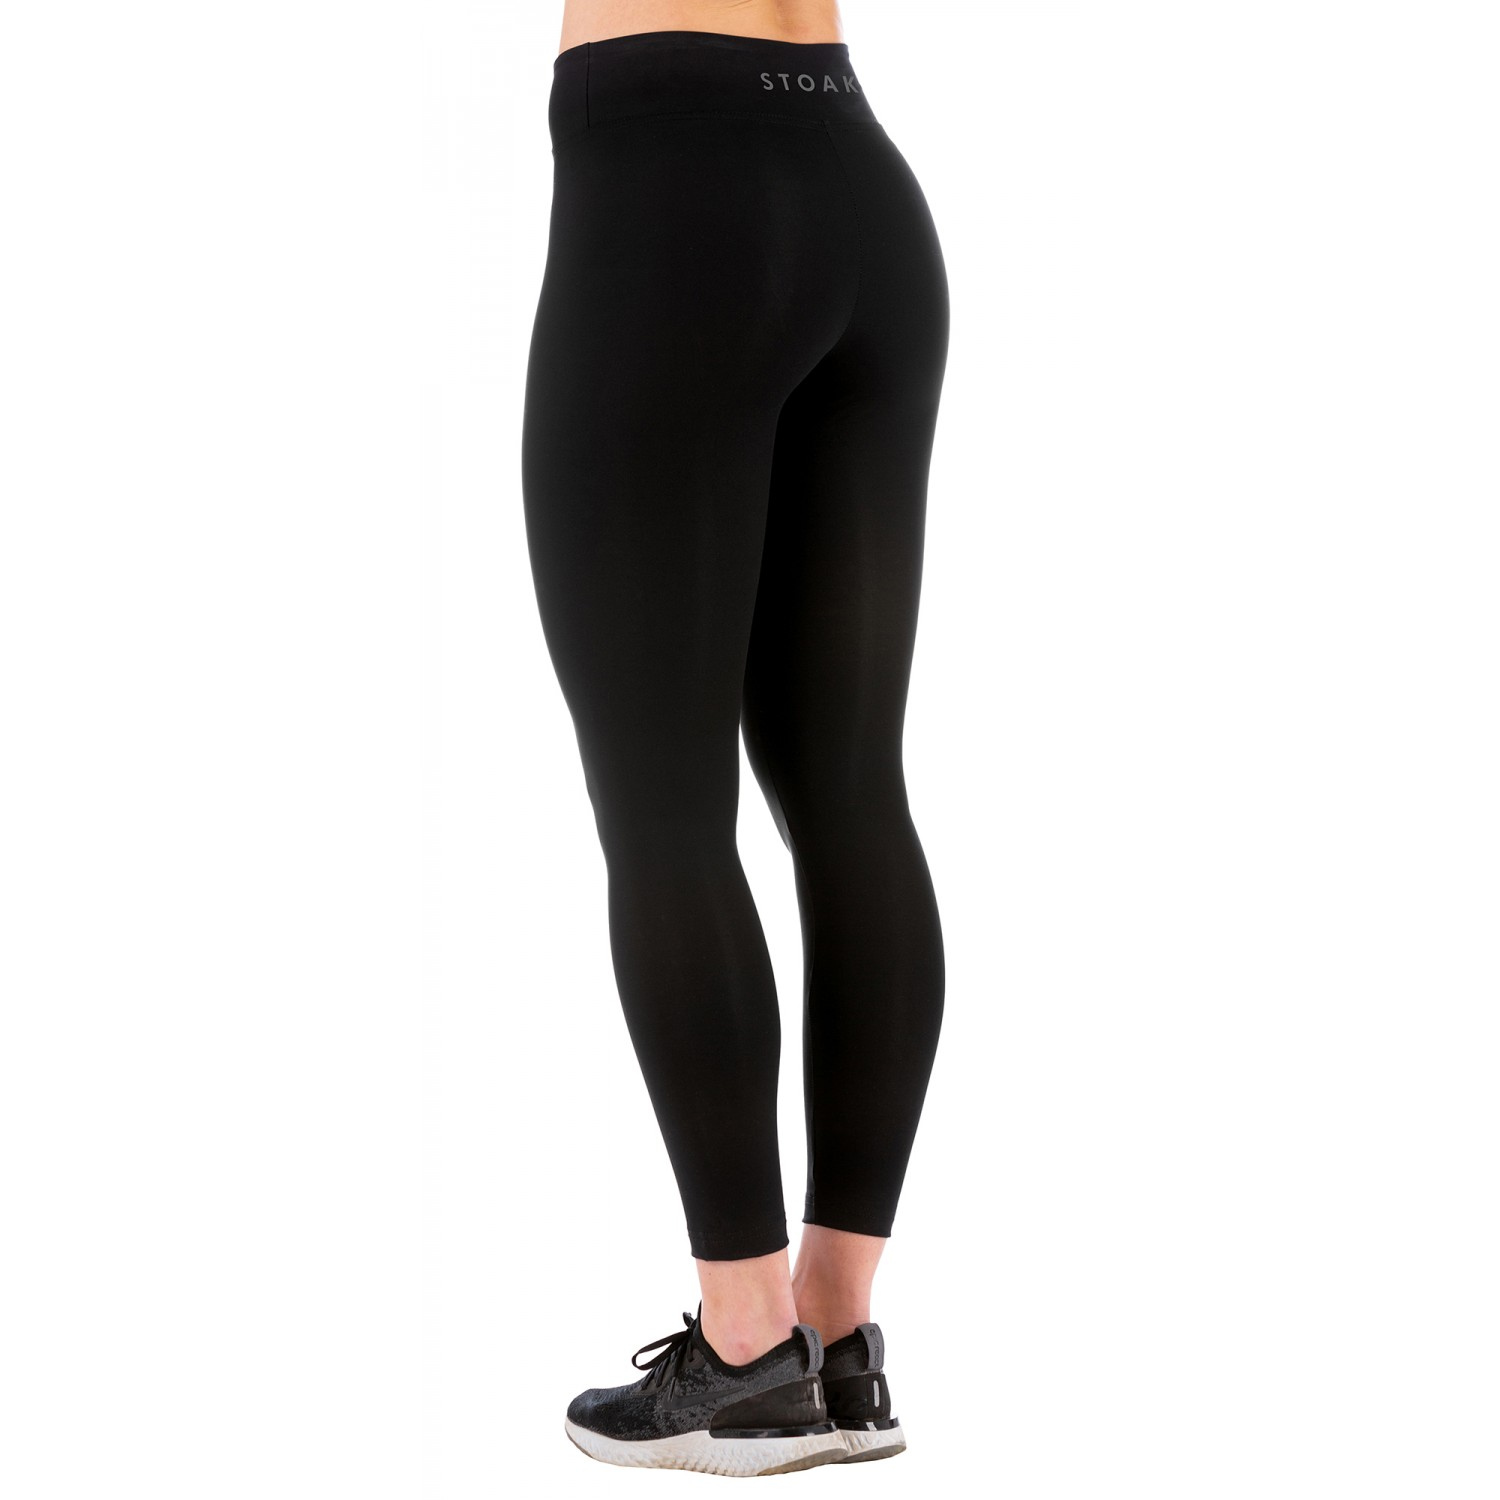 STOAK CARBON Performance Leggings